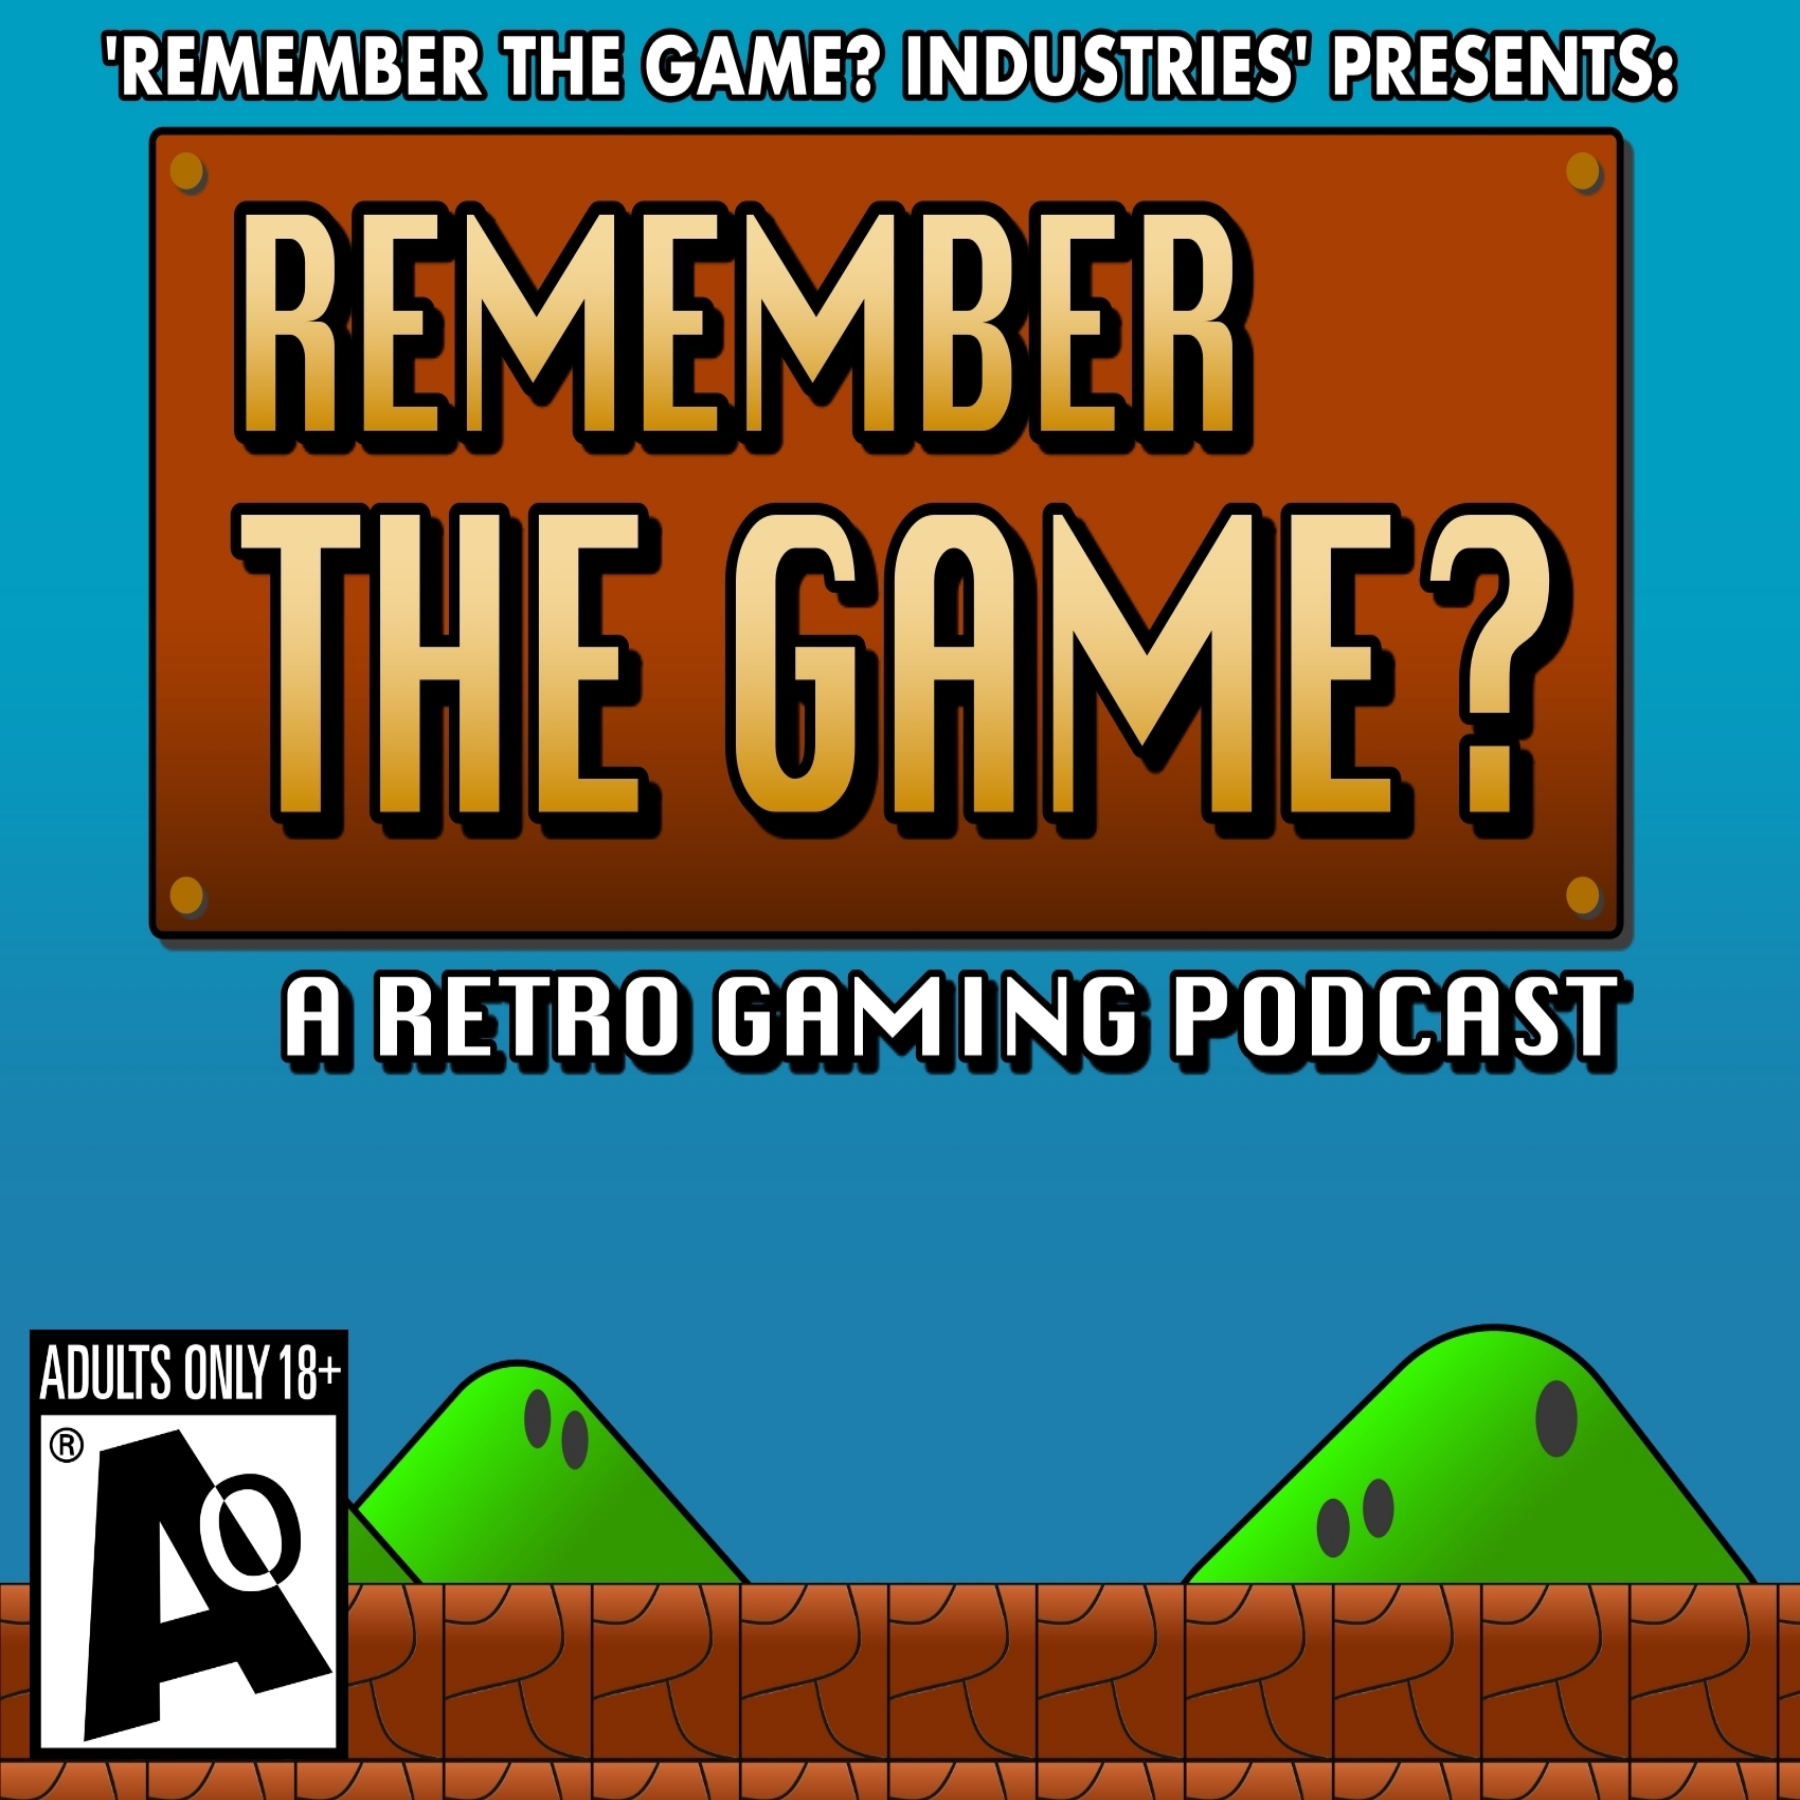 Oo Fortnite Move Bitch Remember The Game Retro Gaming Podcast Podcast Addict